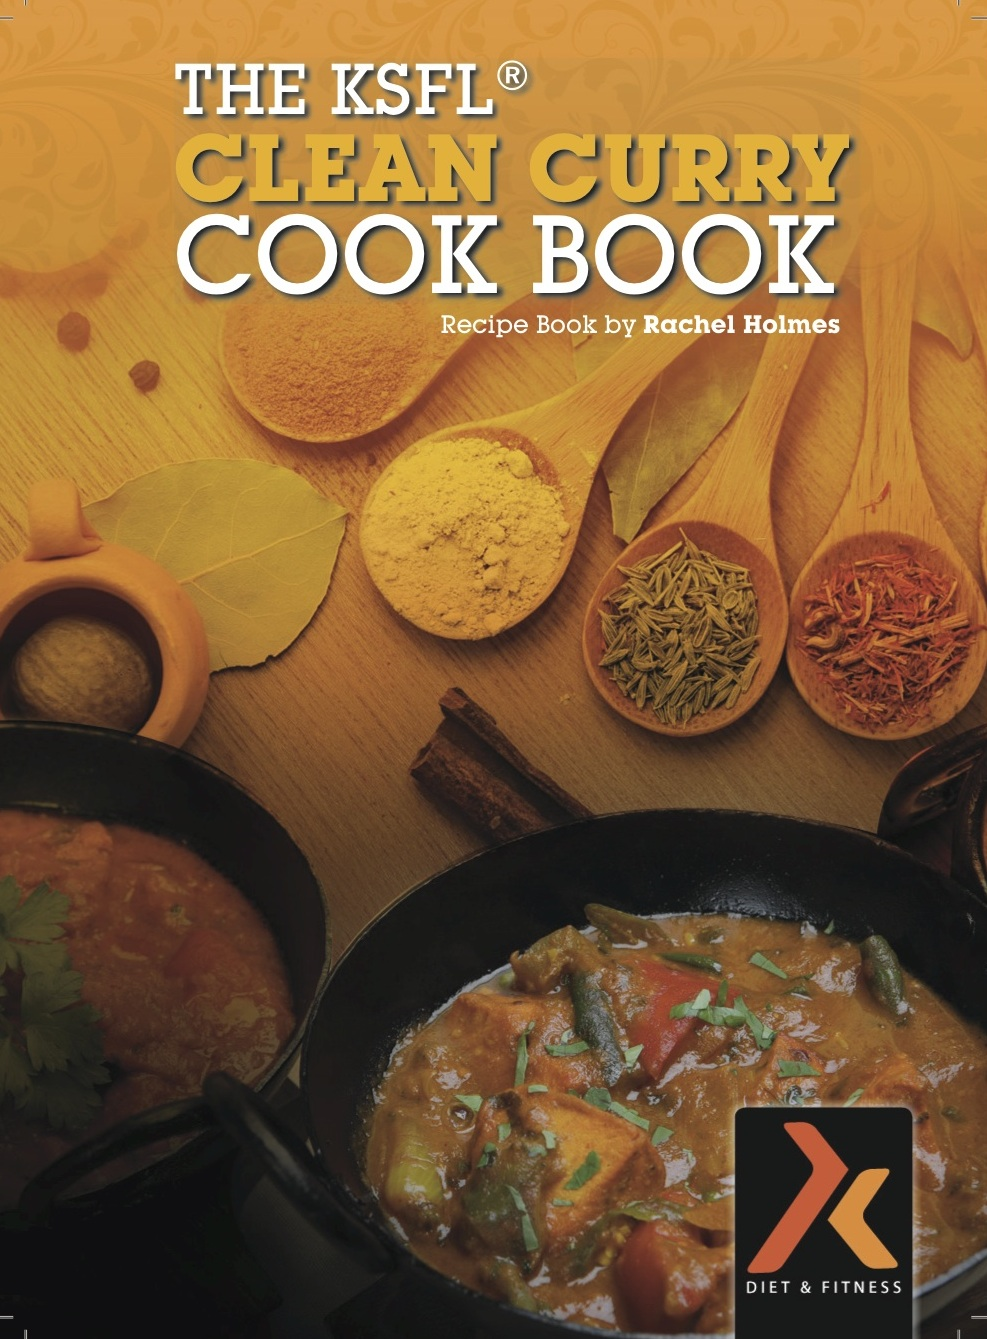 CurryBooklet_PRINT copy 2